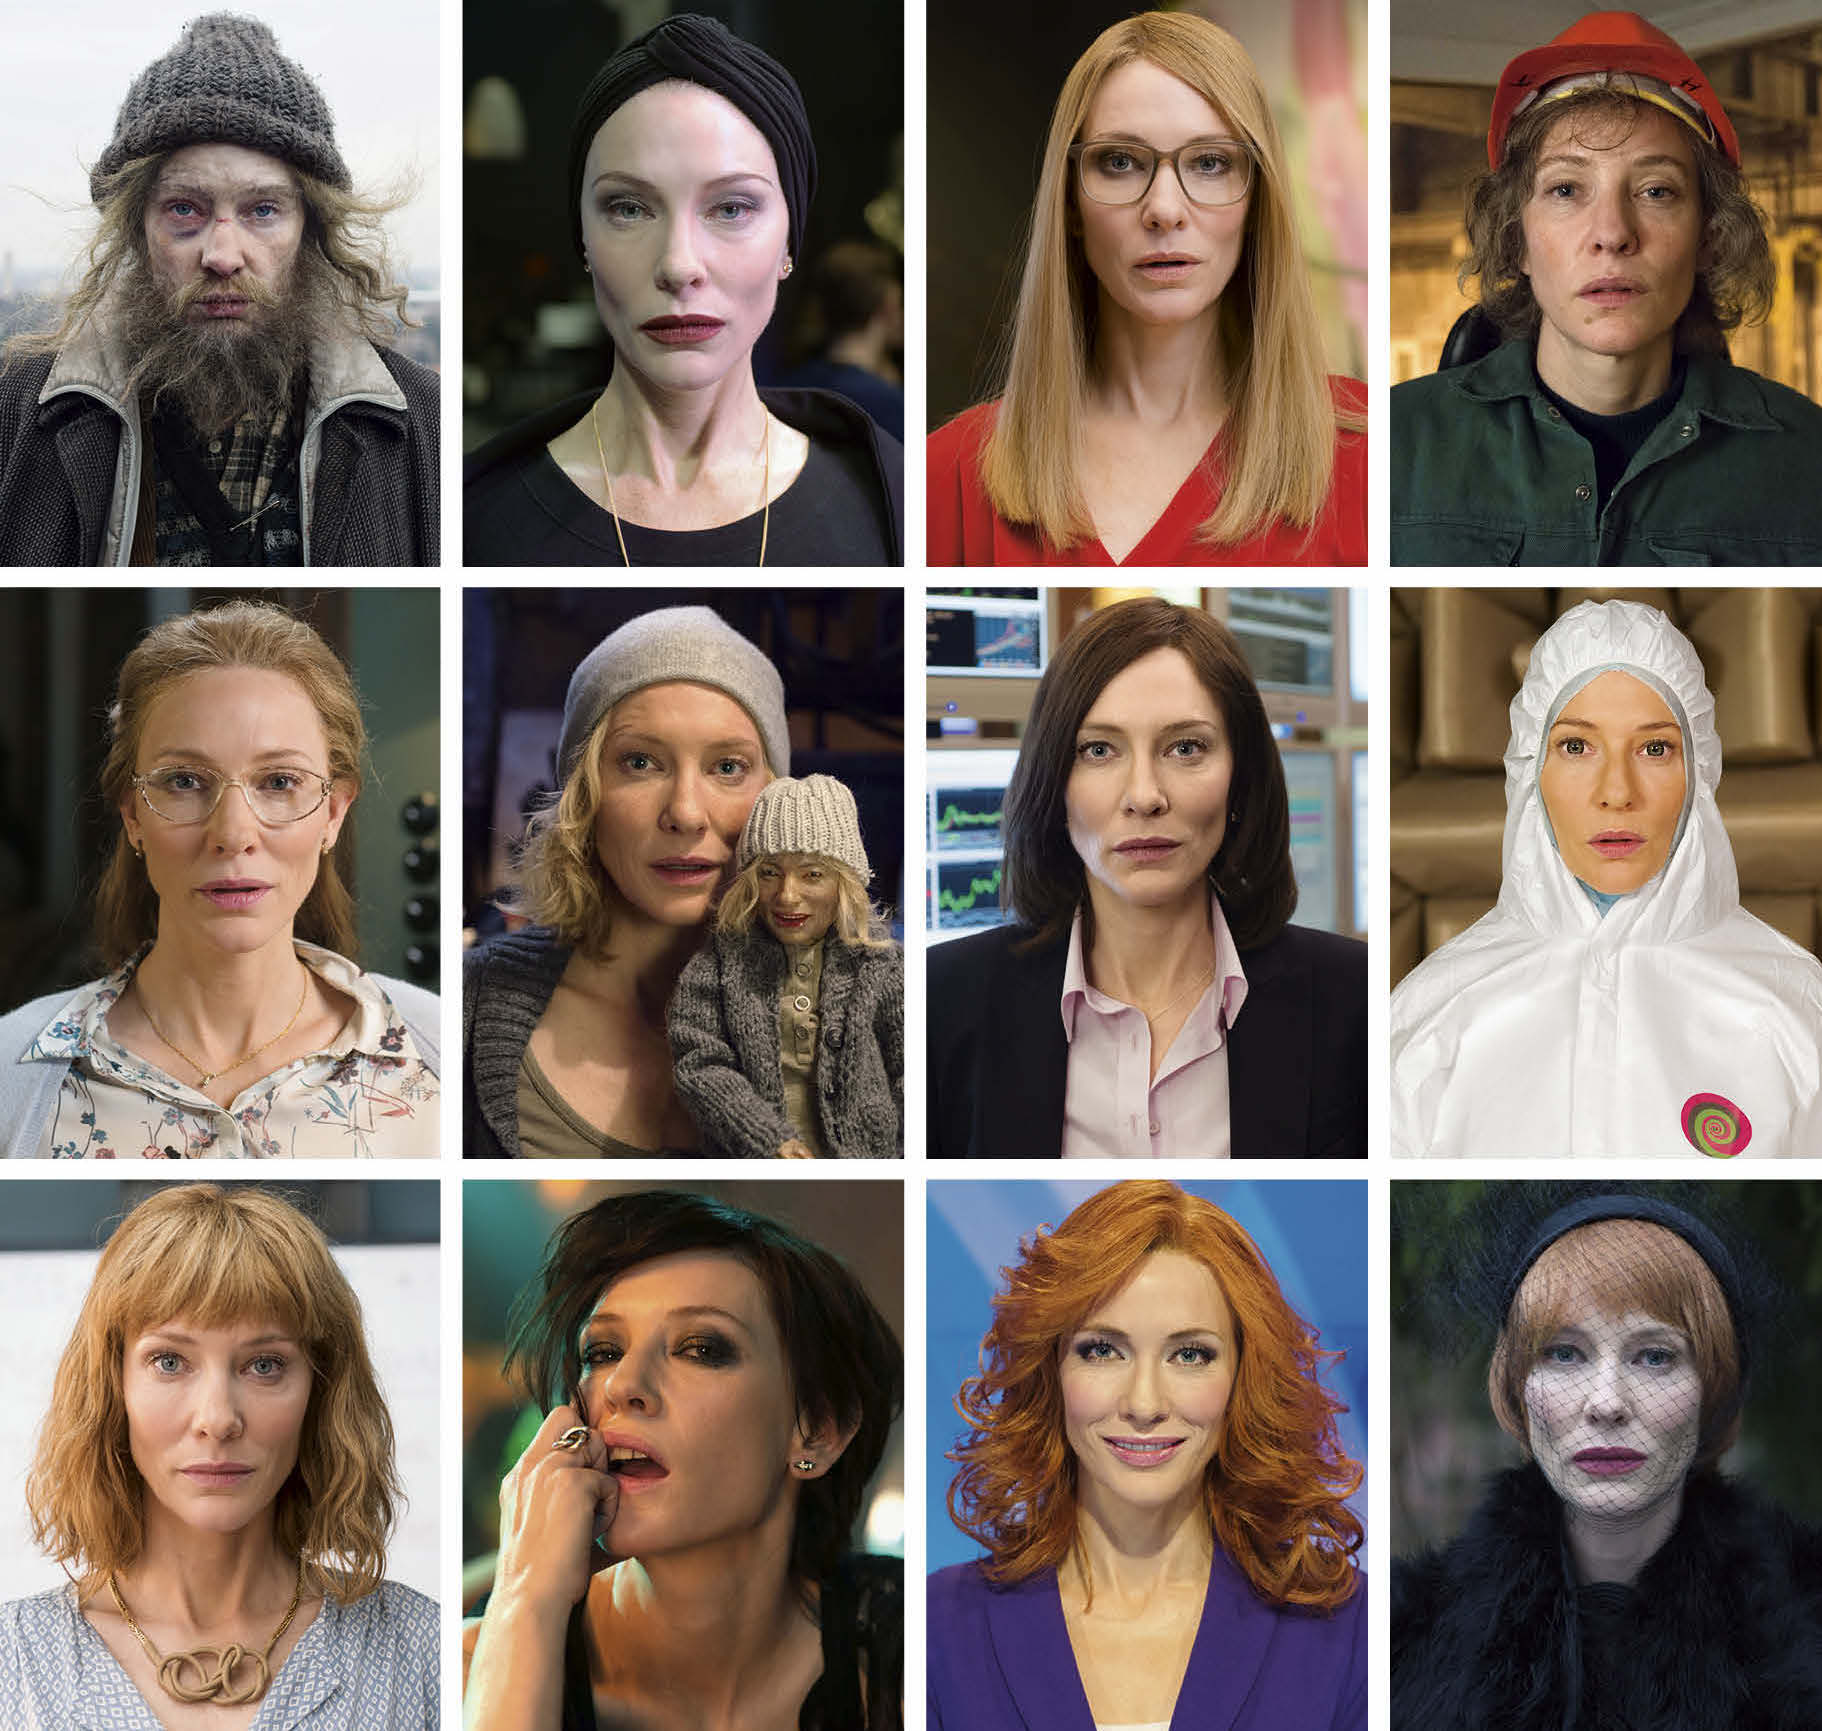 Nearly all of the many faces of Cate Blanchett in Manifesto